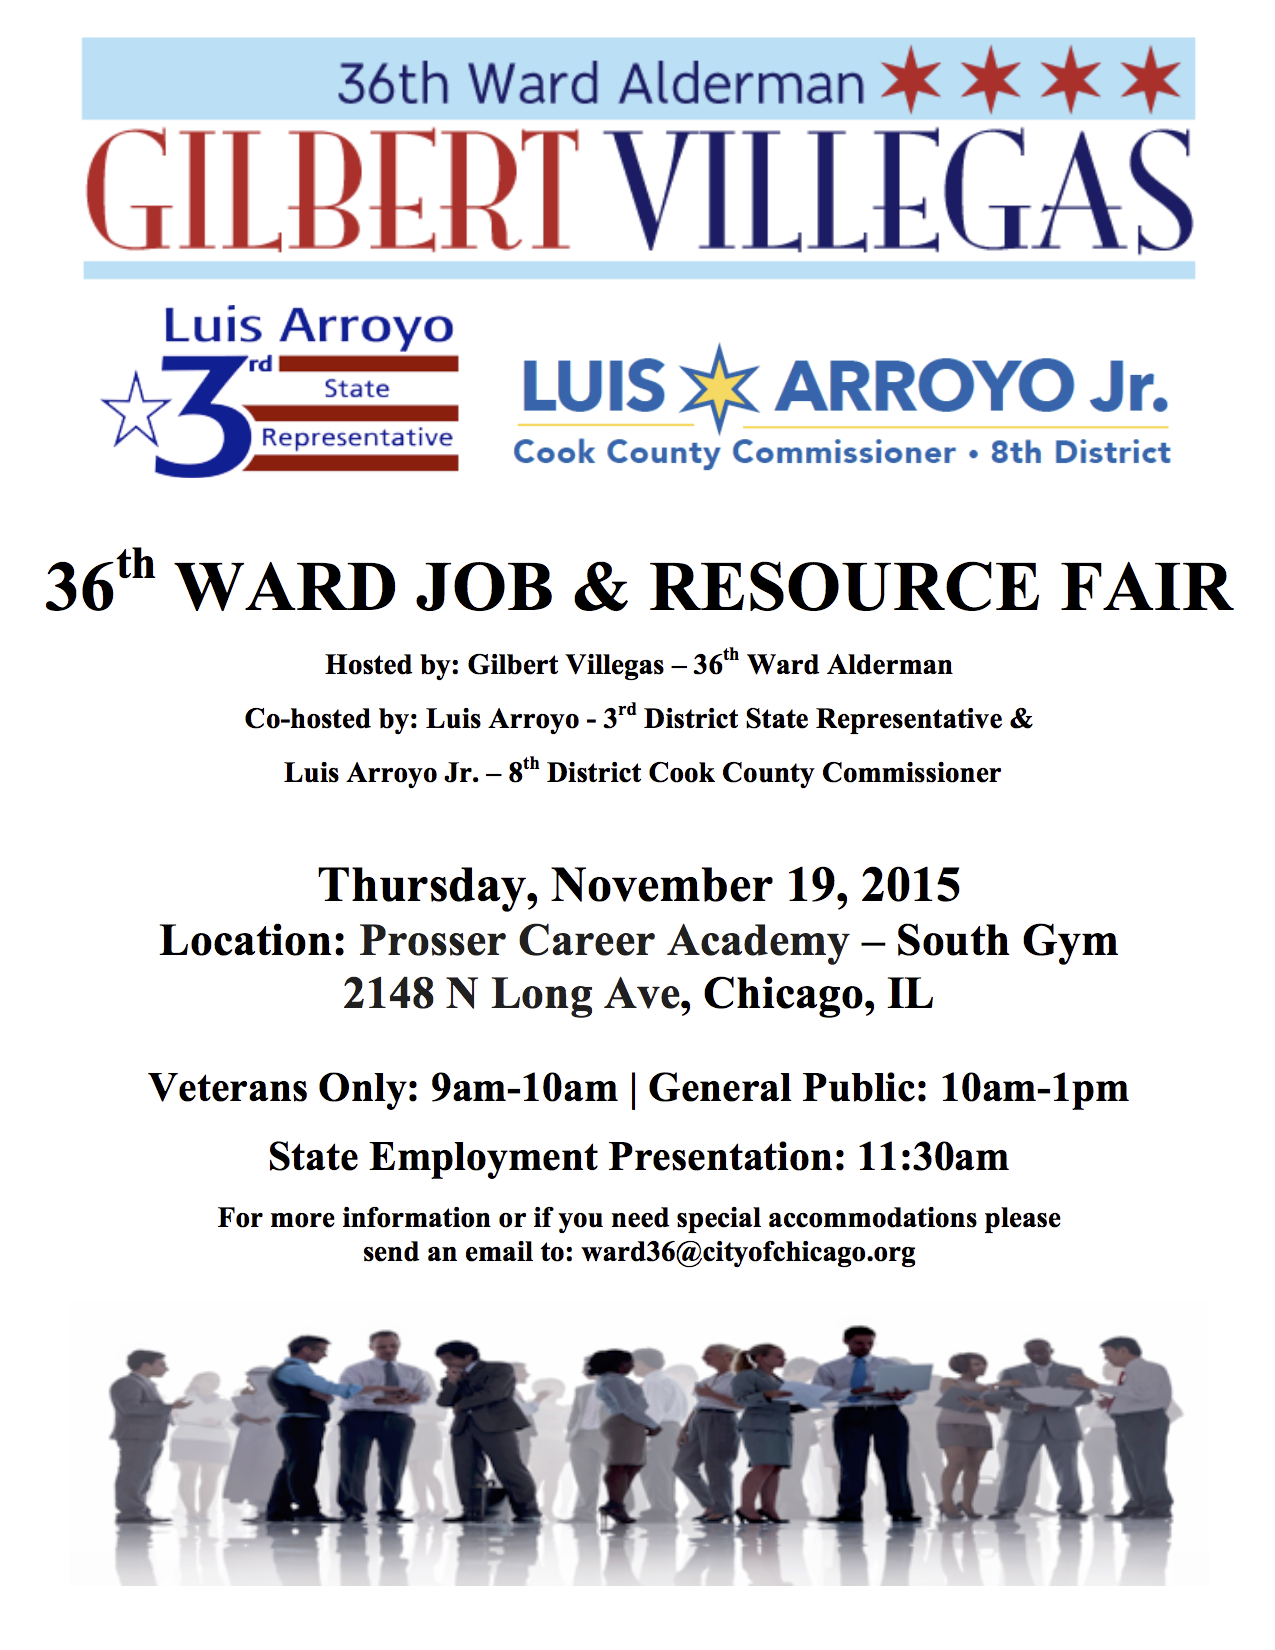 Career___Resource_Fair_Flyer_-_11.19.2015.png